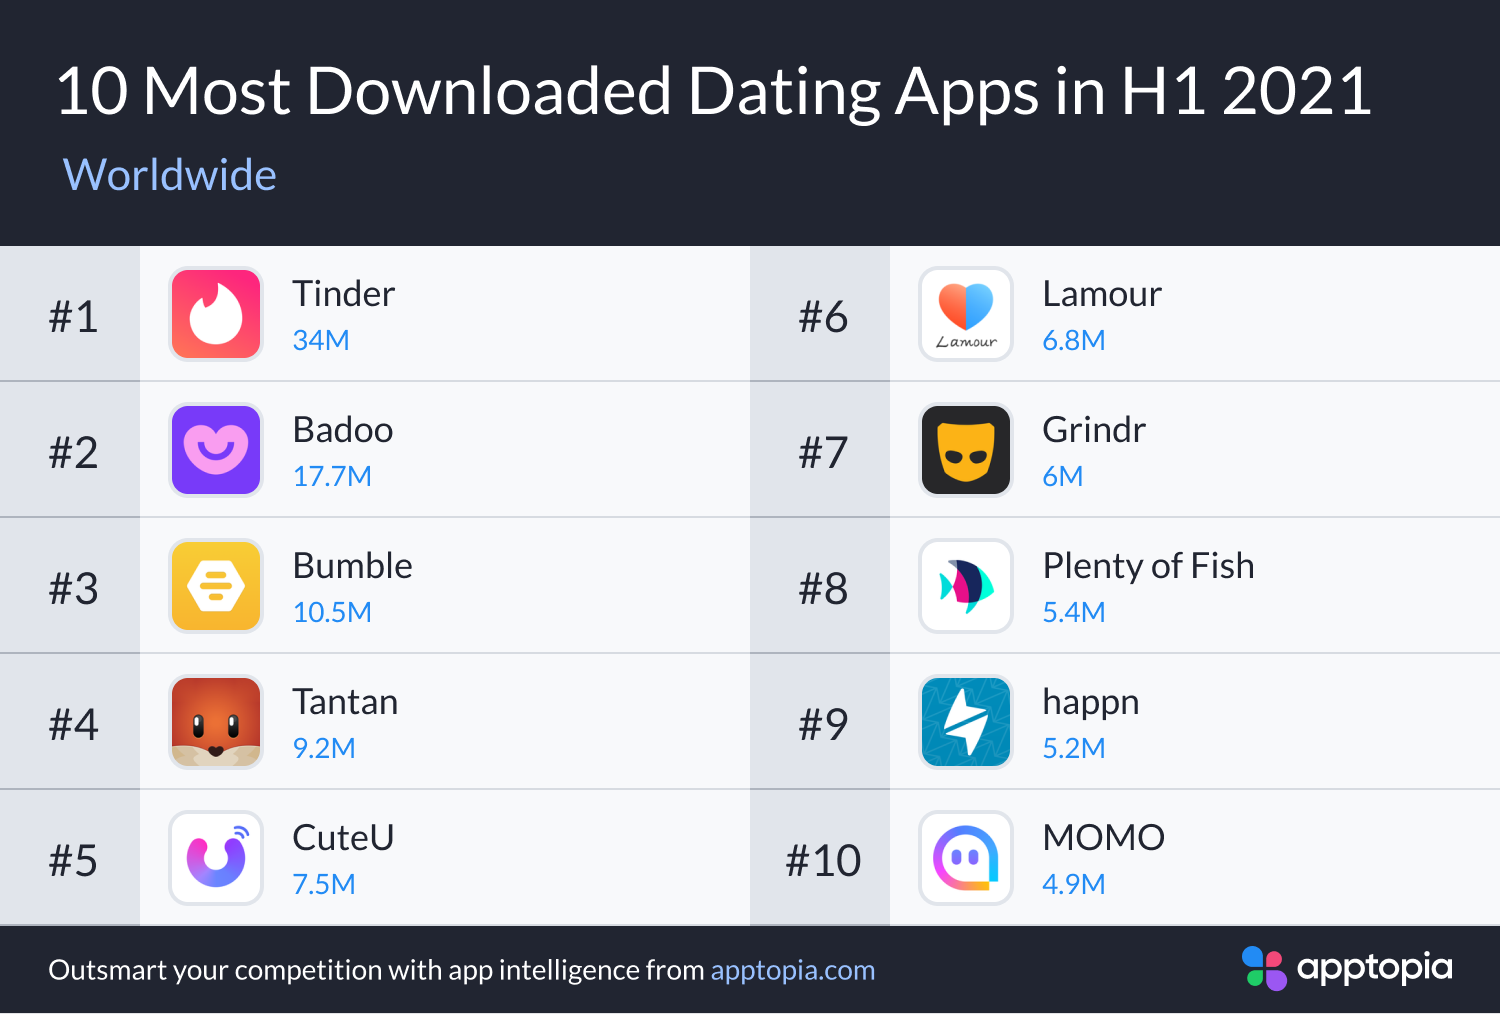 most downloaded dating apps H1 2021